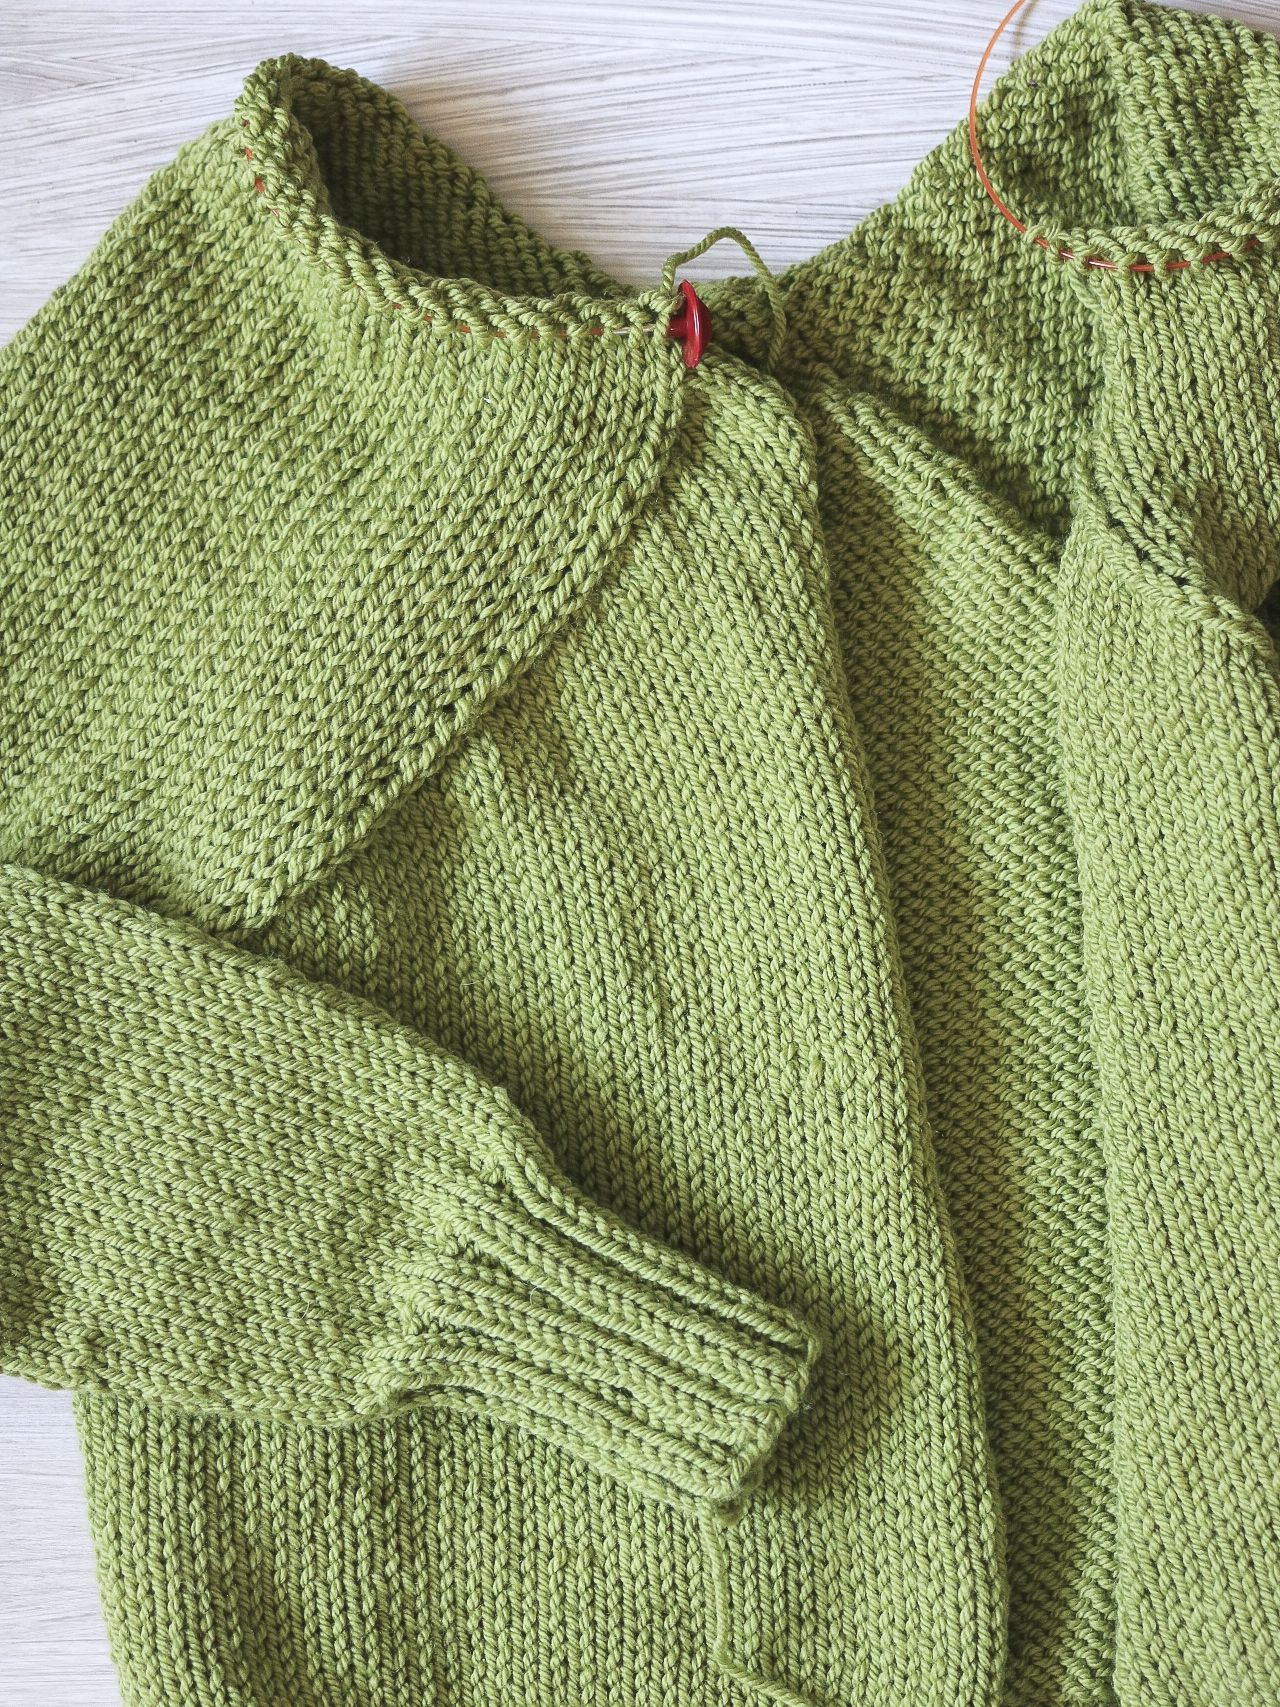 how to pick up stitches in knitting to make a border